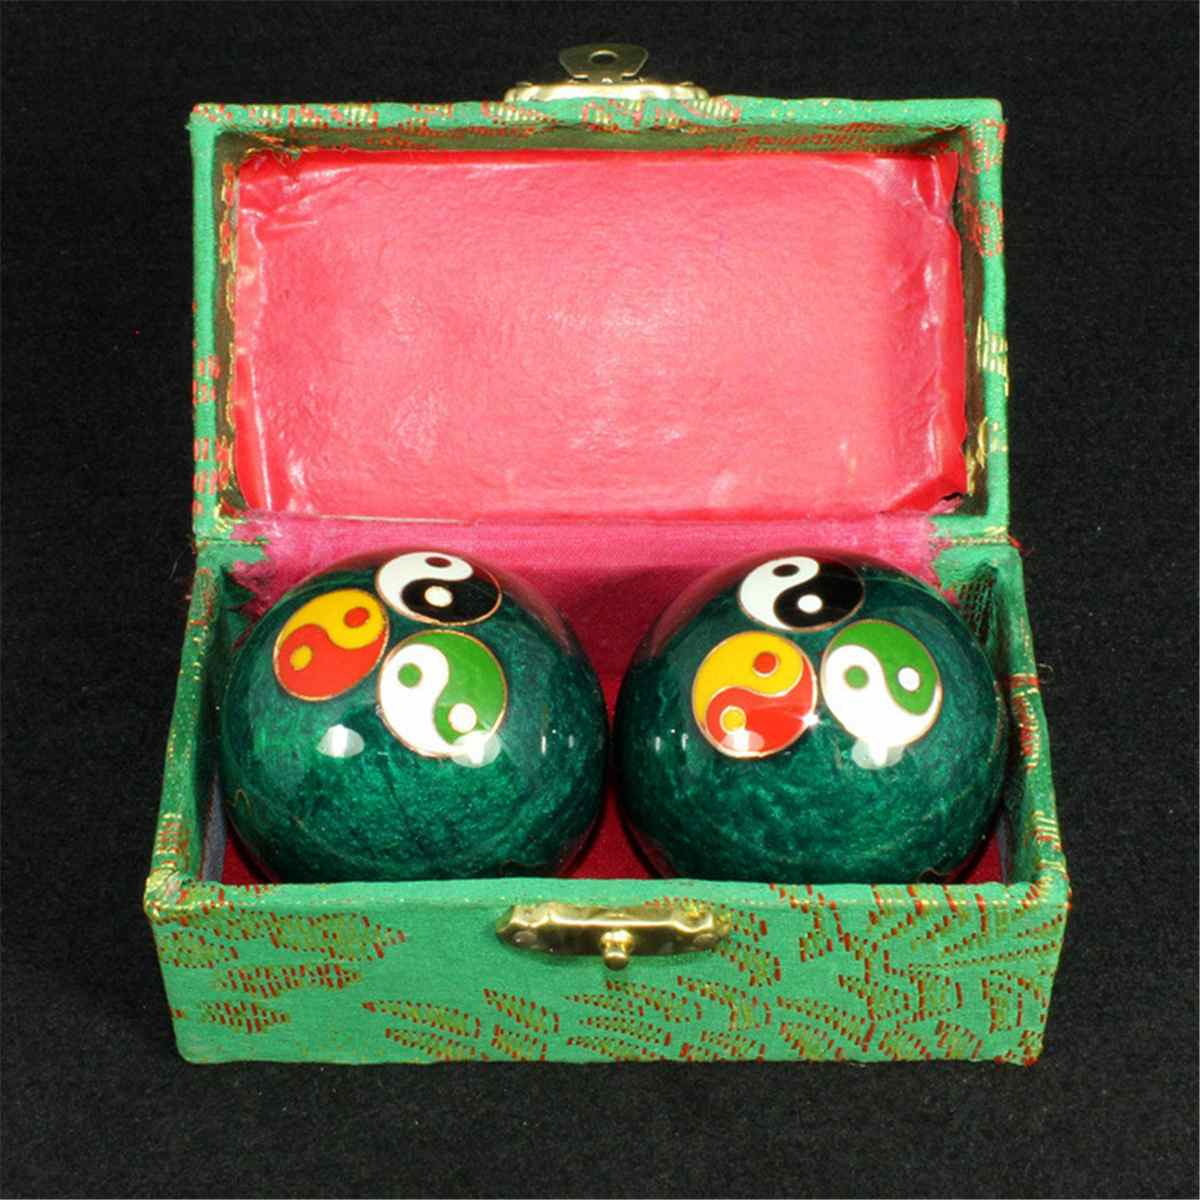 Chinese Health Daily Meditation Balls Hand Finger Exercise Stress Relief Baoding Balls Relaxation Therapy Yin Yang Handballs